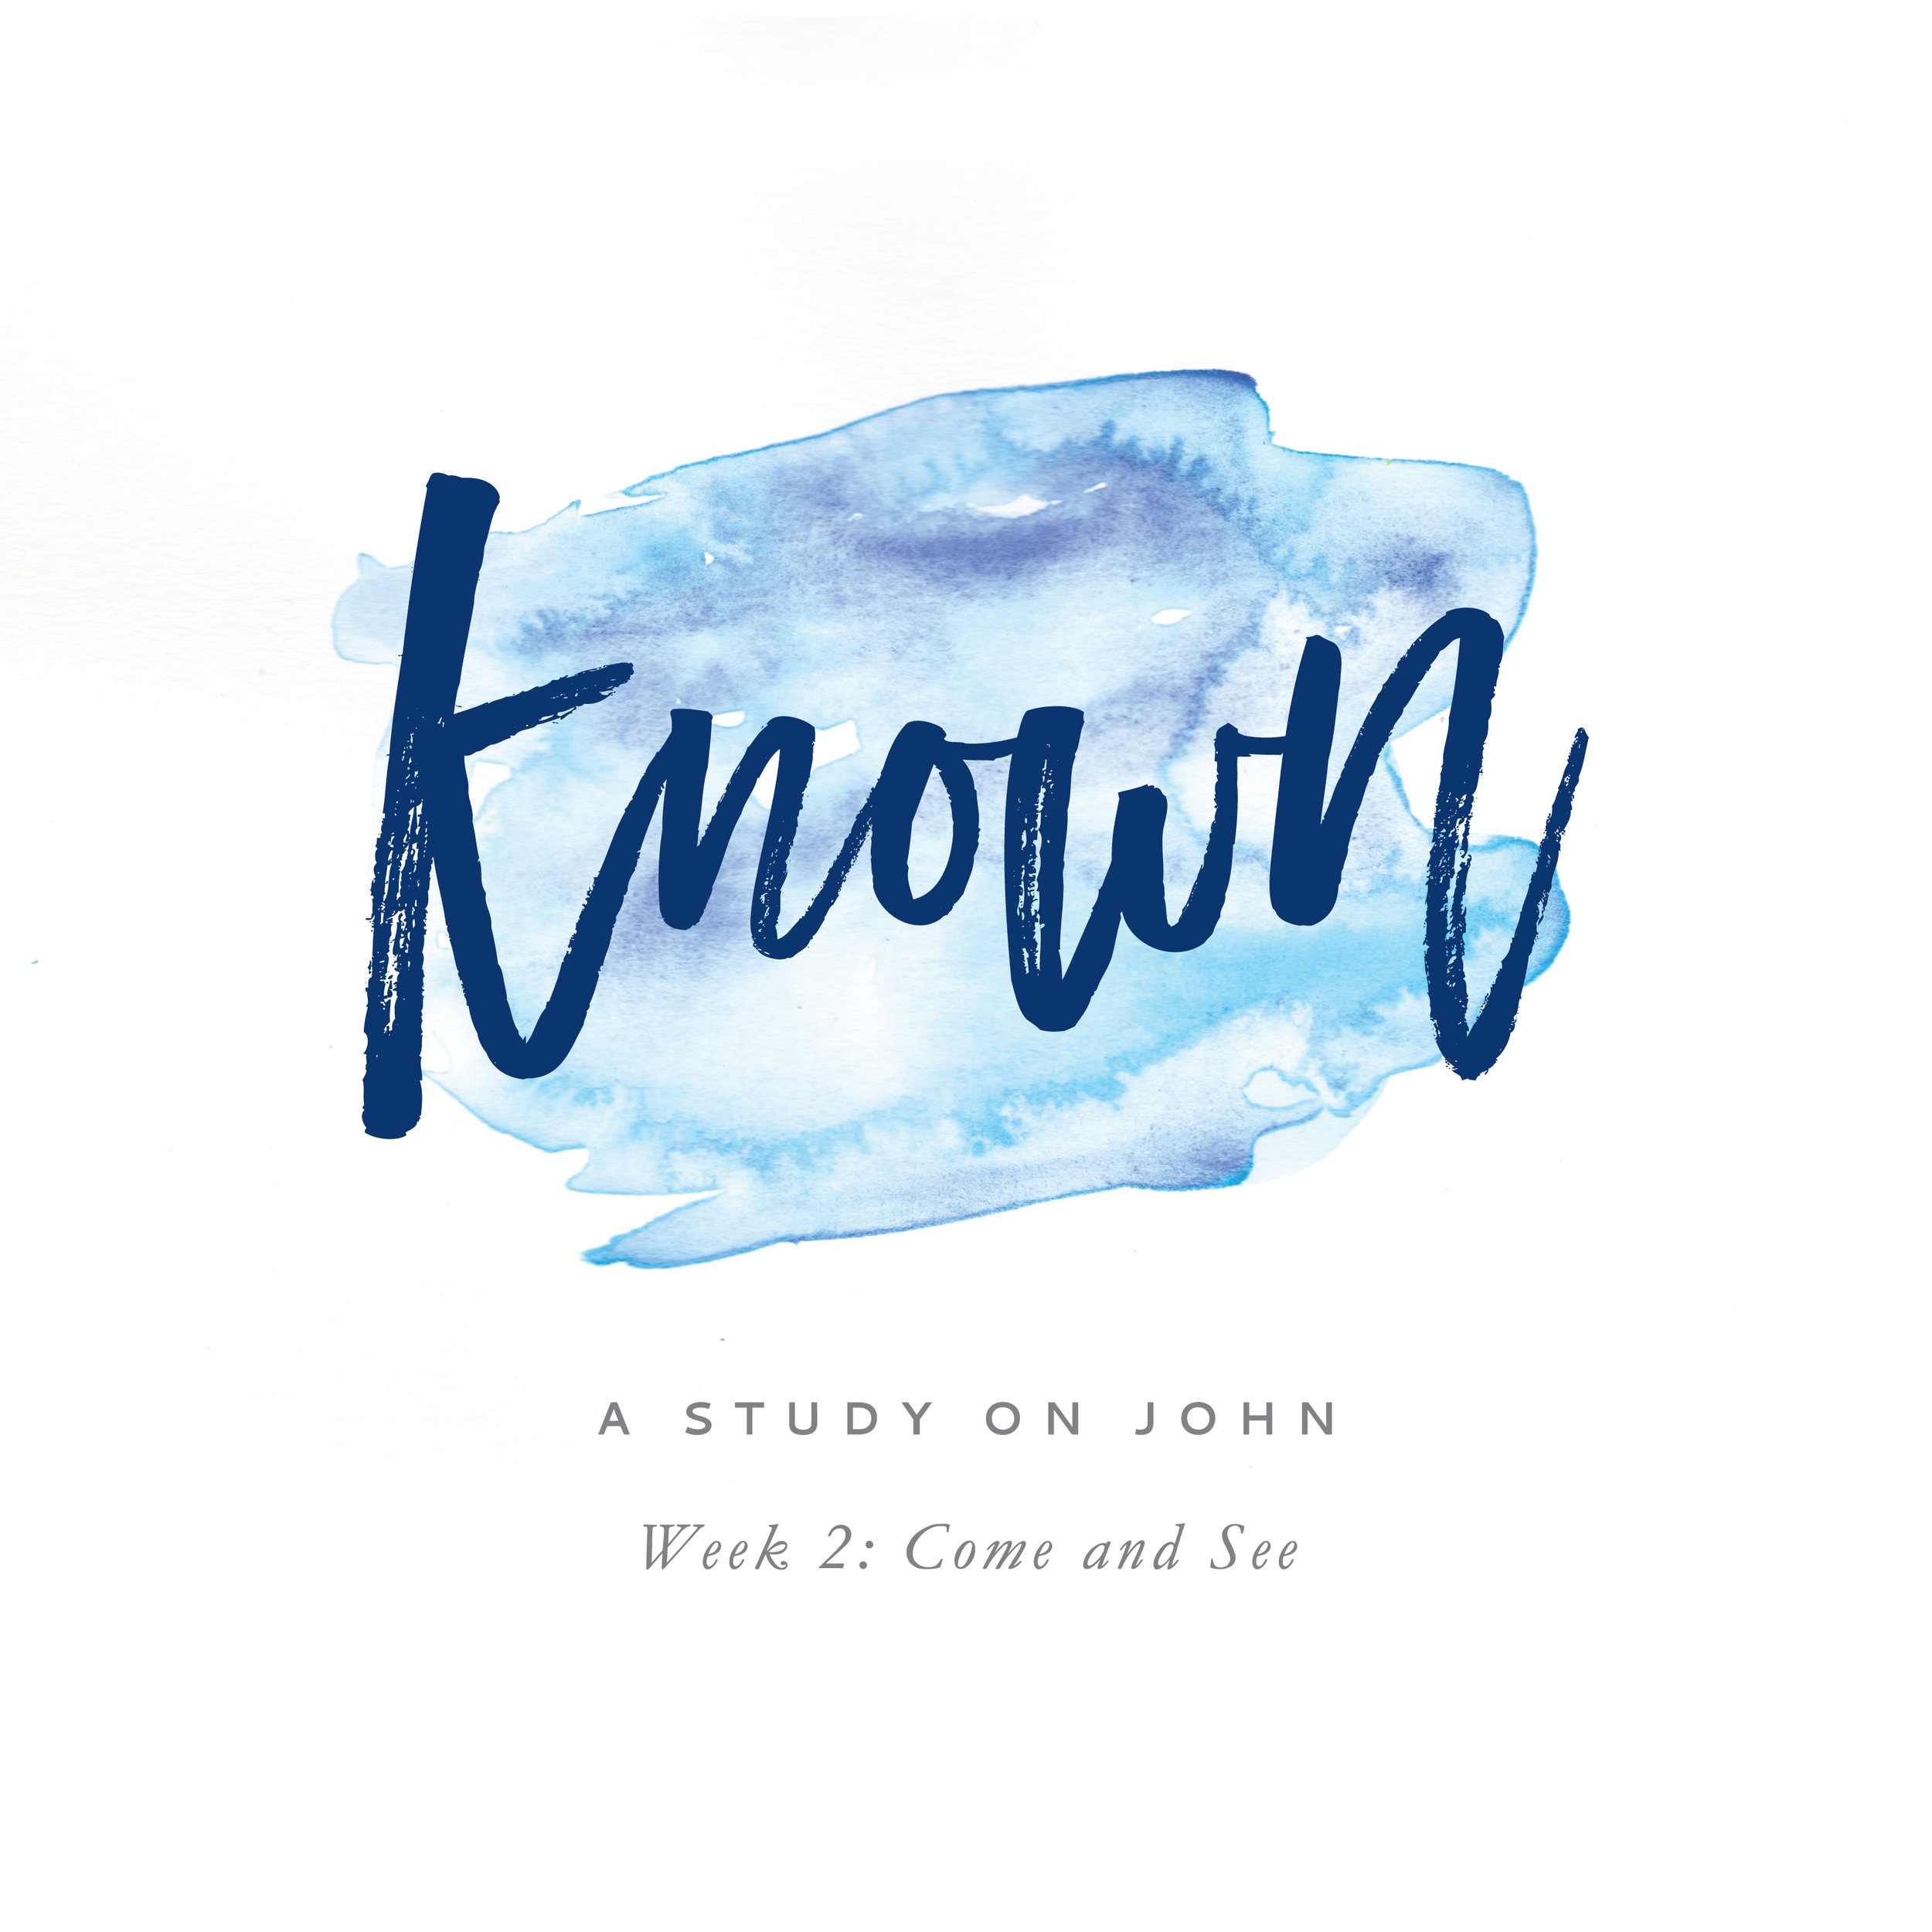 Known: A Study on John by Leslie Ann Jones. Week 2 Podcast. In this lesson, we learn about the invitation that God has given us to come and see, know and make known the Word that became flesh. The lesson corresponds with page 4 (Week 2: Come and See) of the Known workbook, available for download at leslieannjones.com/known.